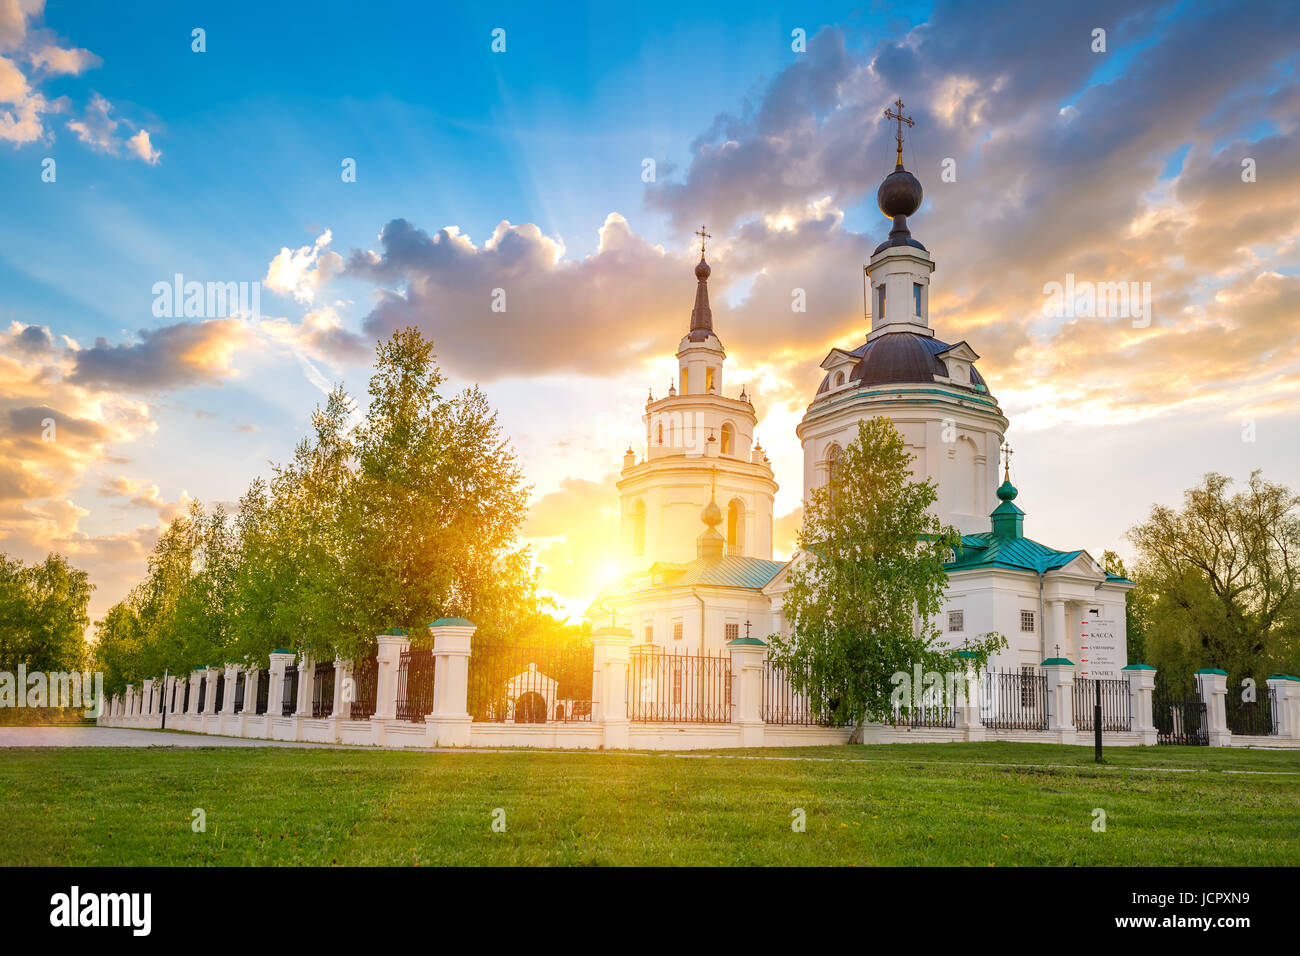 Clouds over Russian orthodox church at sunset. Bolshoe Boldino, Russia - Stock Image